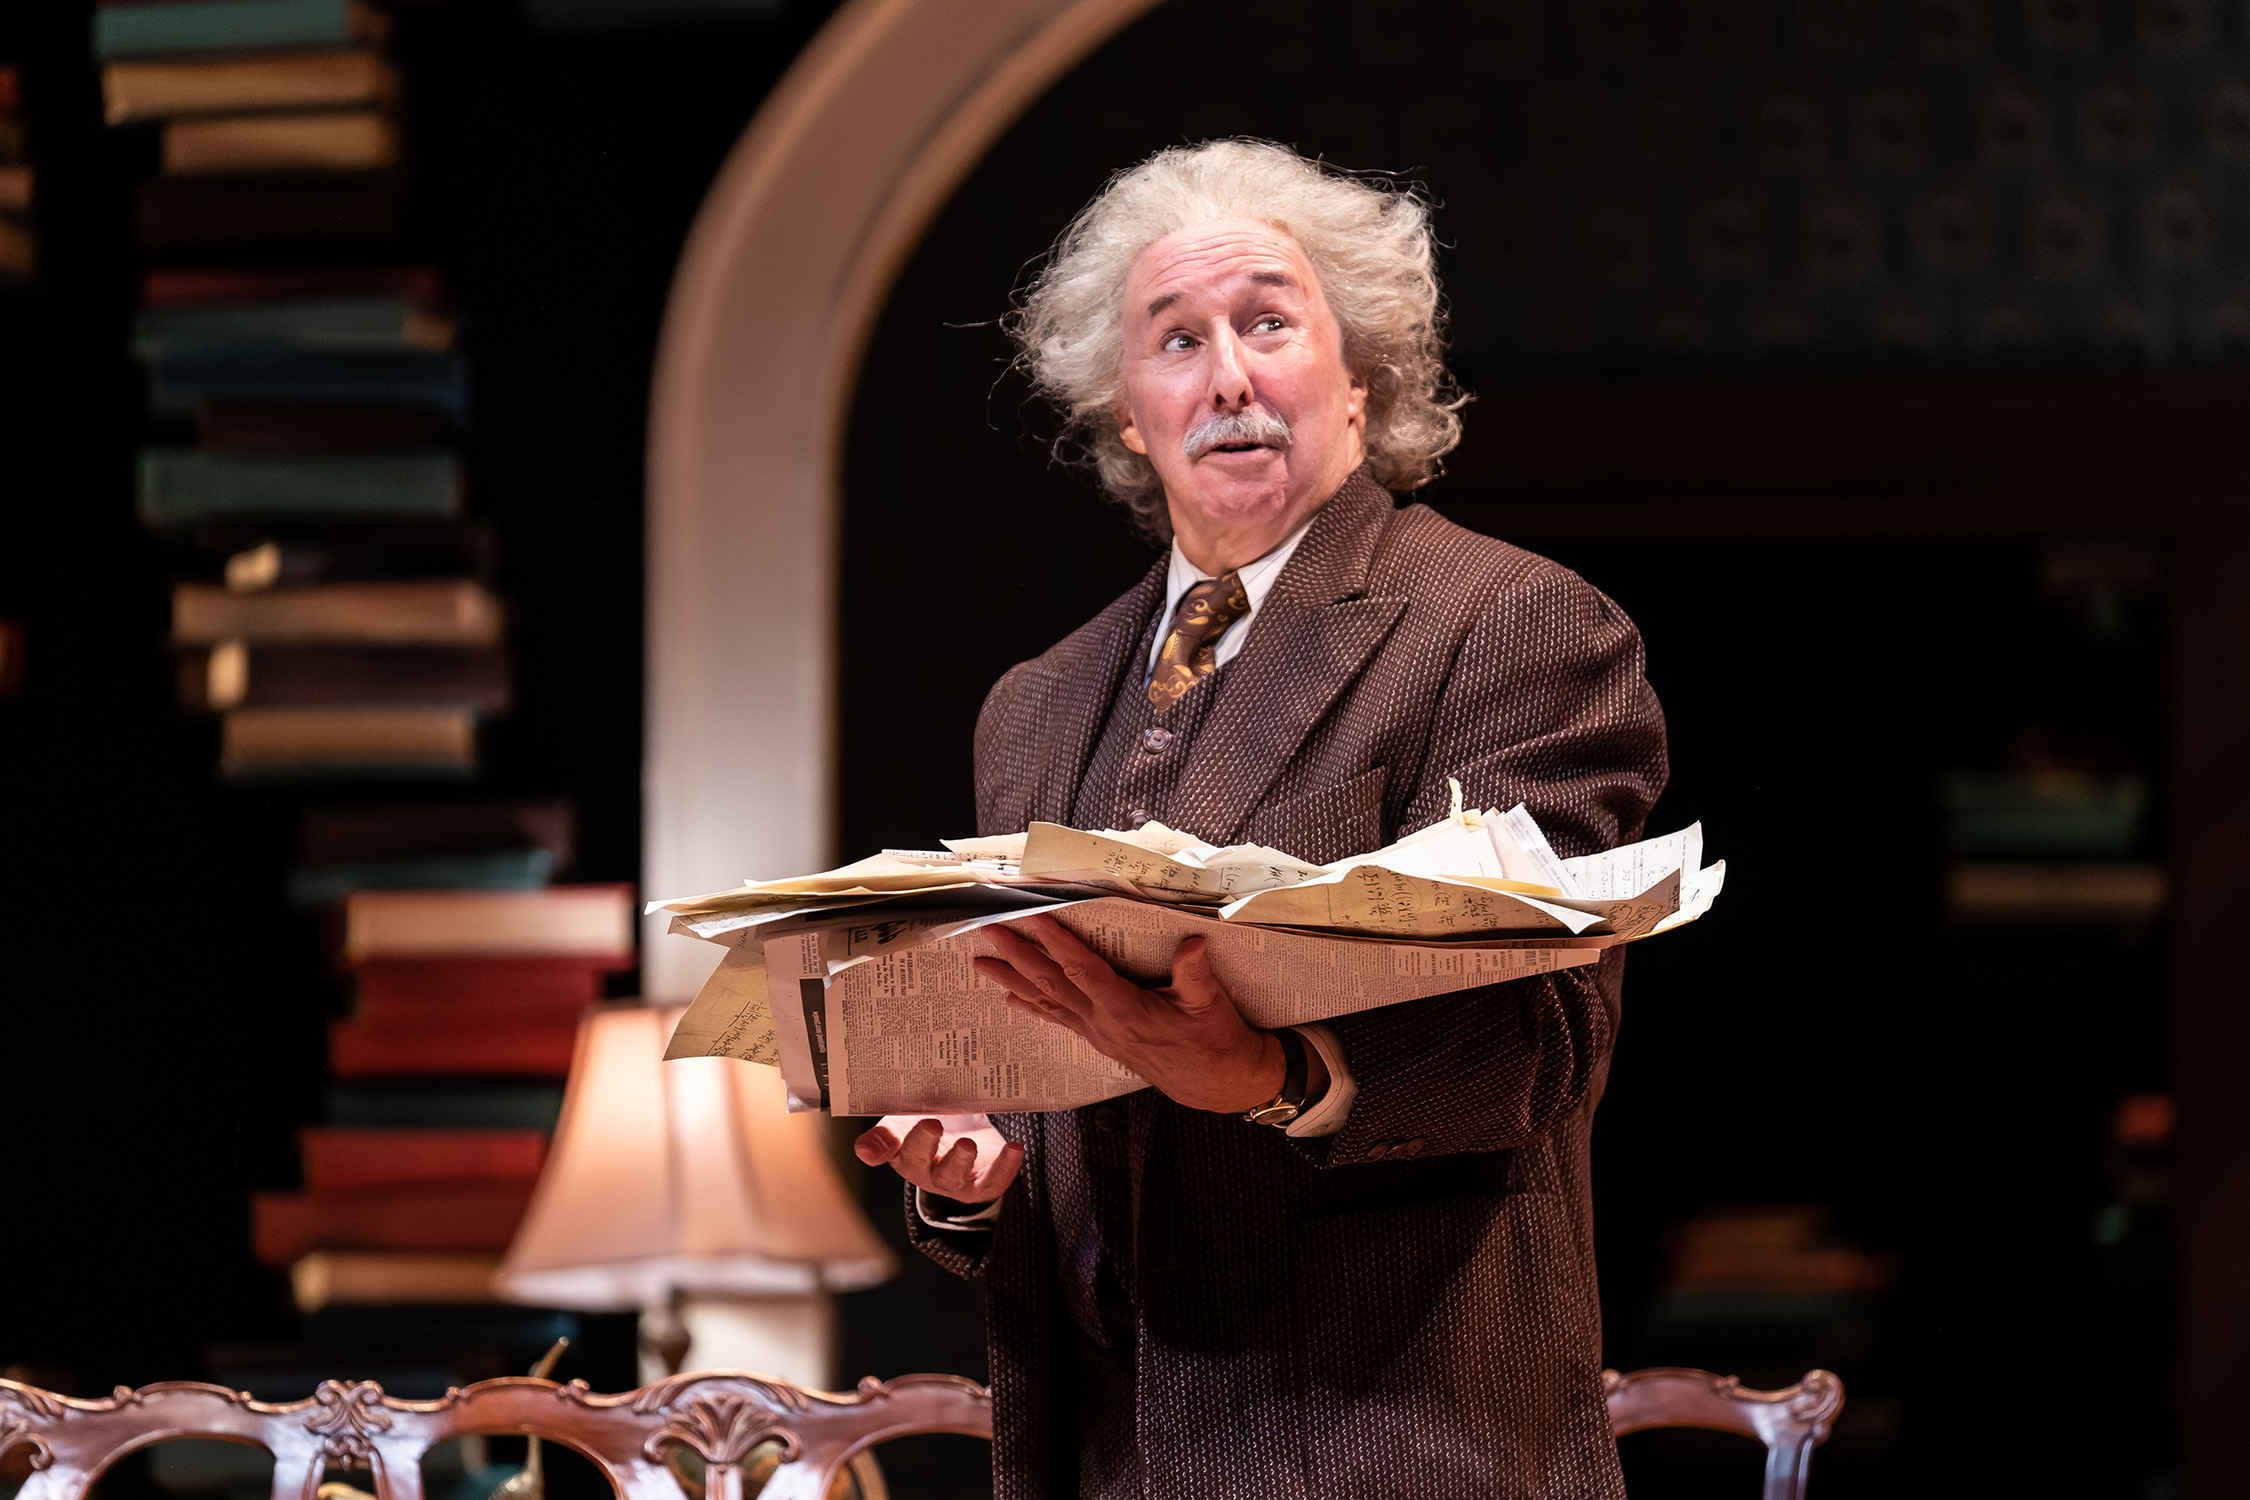 """Christopher Bloch as Albert Einstein in the Ford's Theatre production of Deborah Brevoort's """"My Lord, What a Night"""". Photo by (Scott Suchman)."""